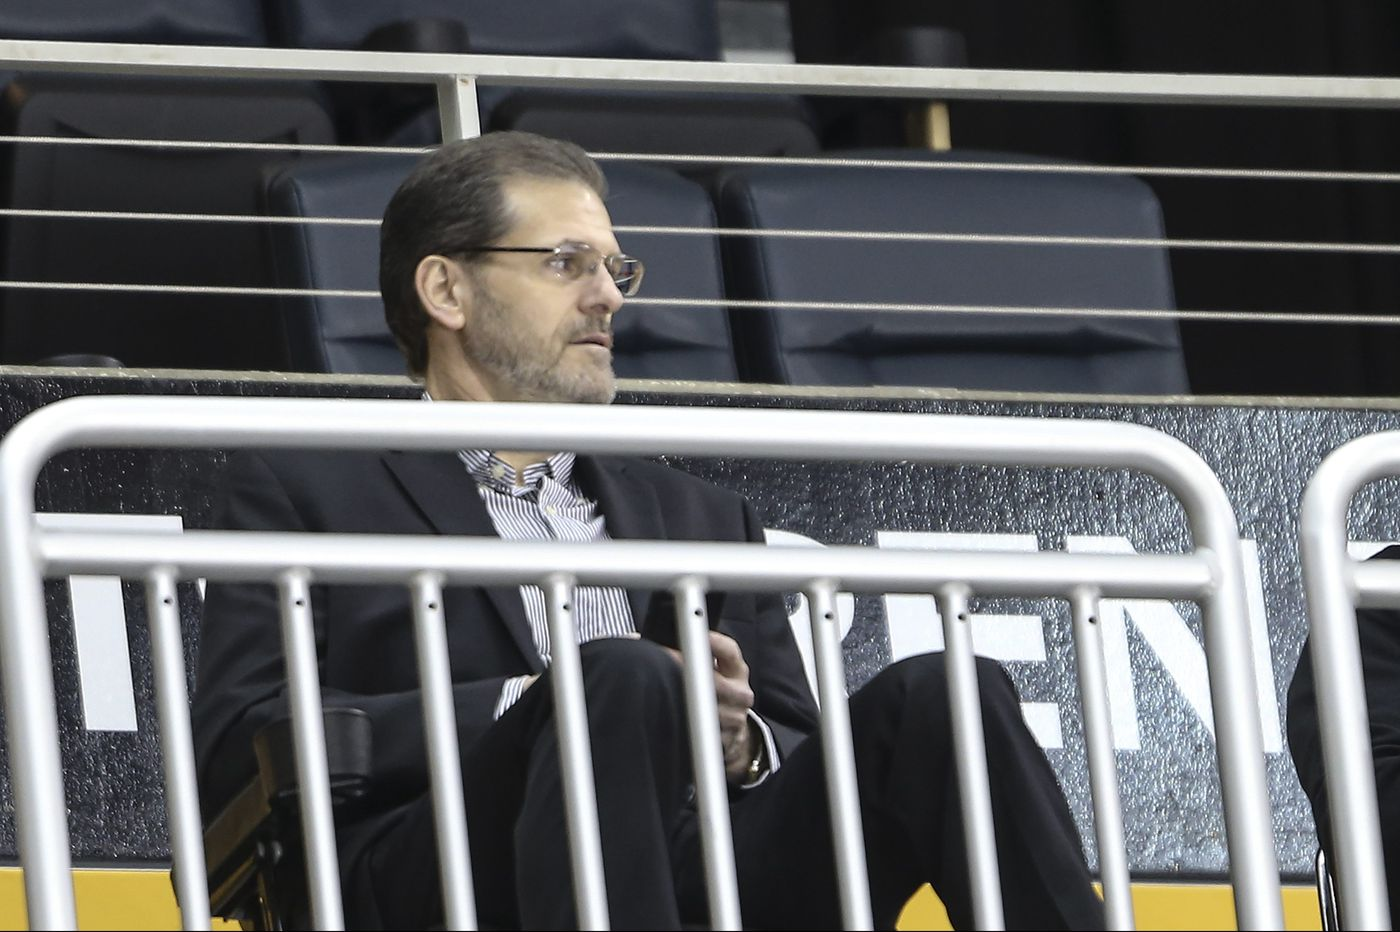 Former Flyers GM Ron Hextall hosts press conference, 11 a.m. | Live video